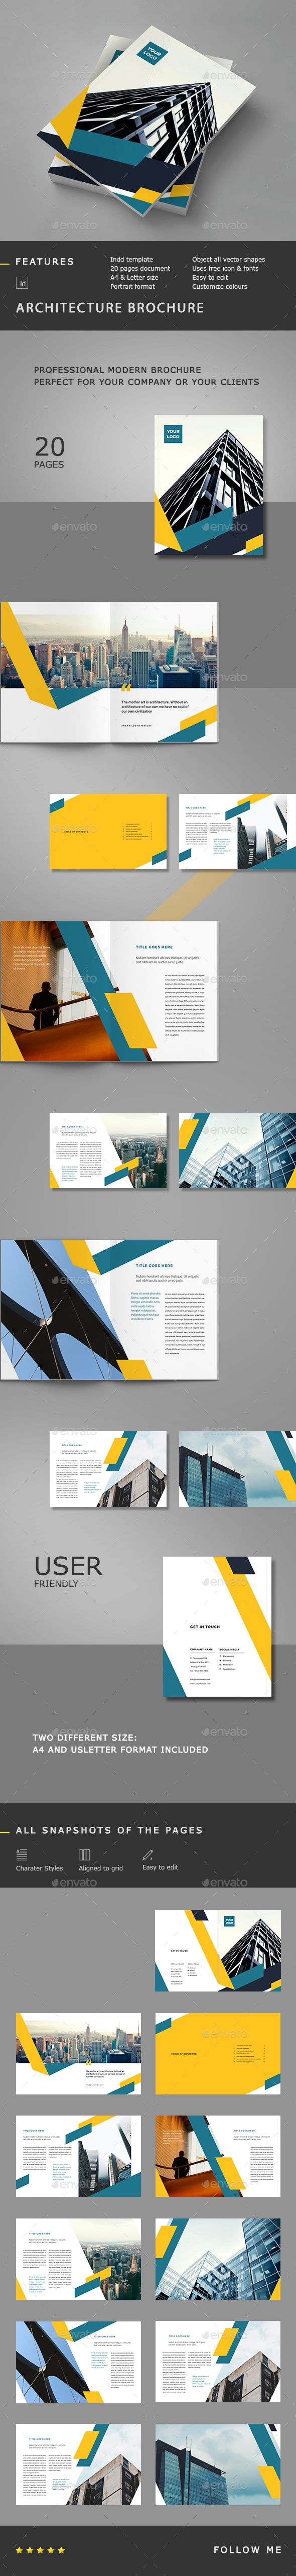 Architecture Brochure Template InDesign INDD #design Download: http://graphicriver.net/item/architecture-brochure/14155315?ref=ksioks